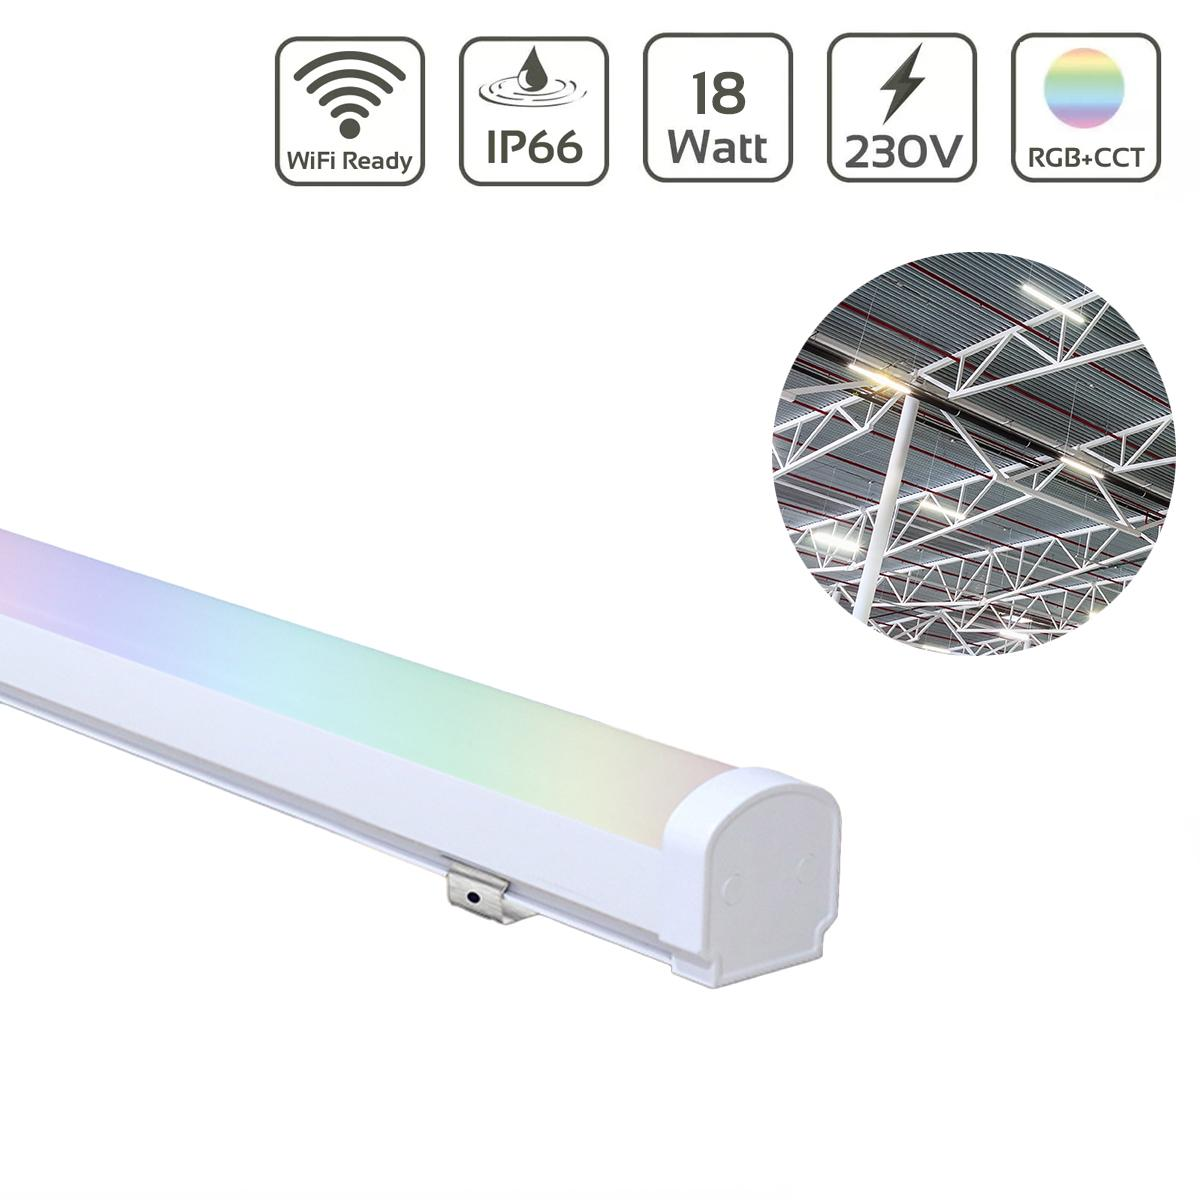 MiBoxer 18W RGB+CCT LED Linear Light WiFi Feuchtraumleuchte 230V IP66 LL-1018